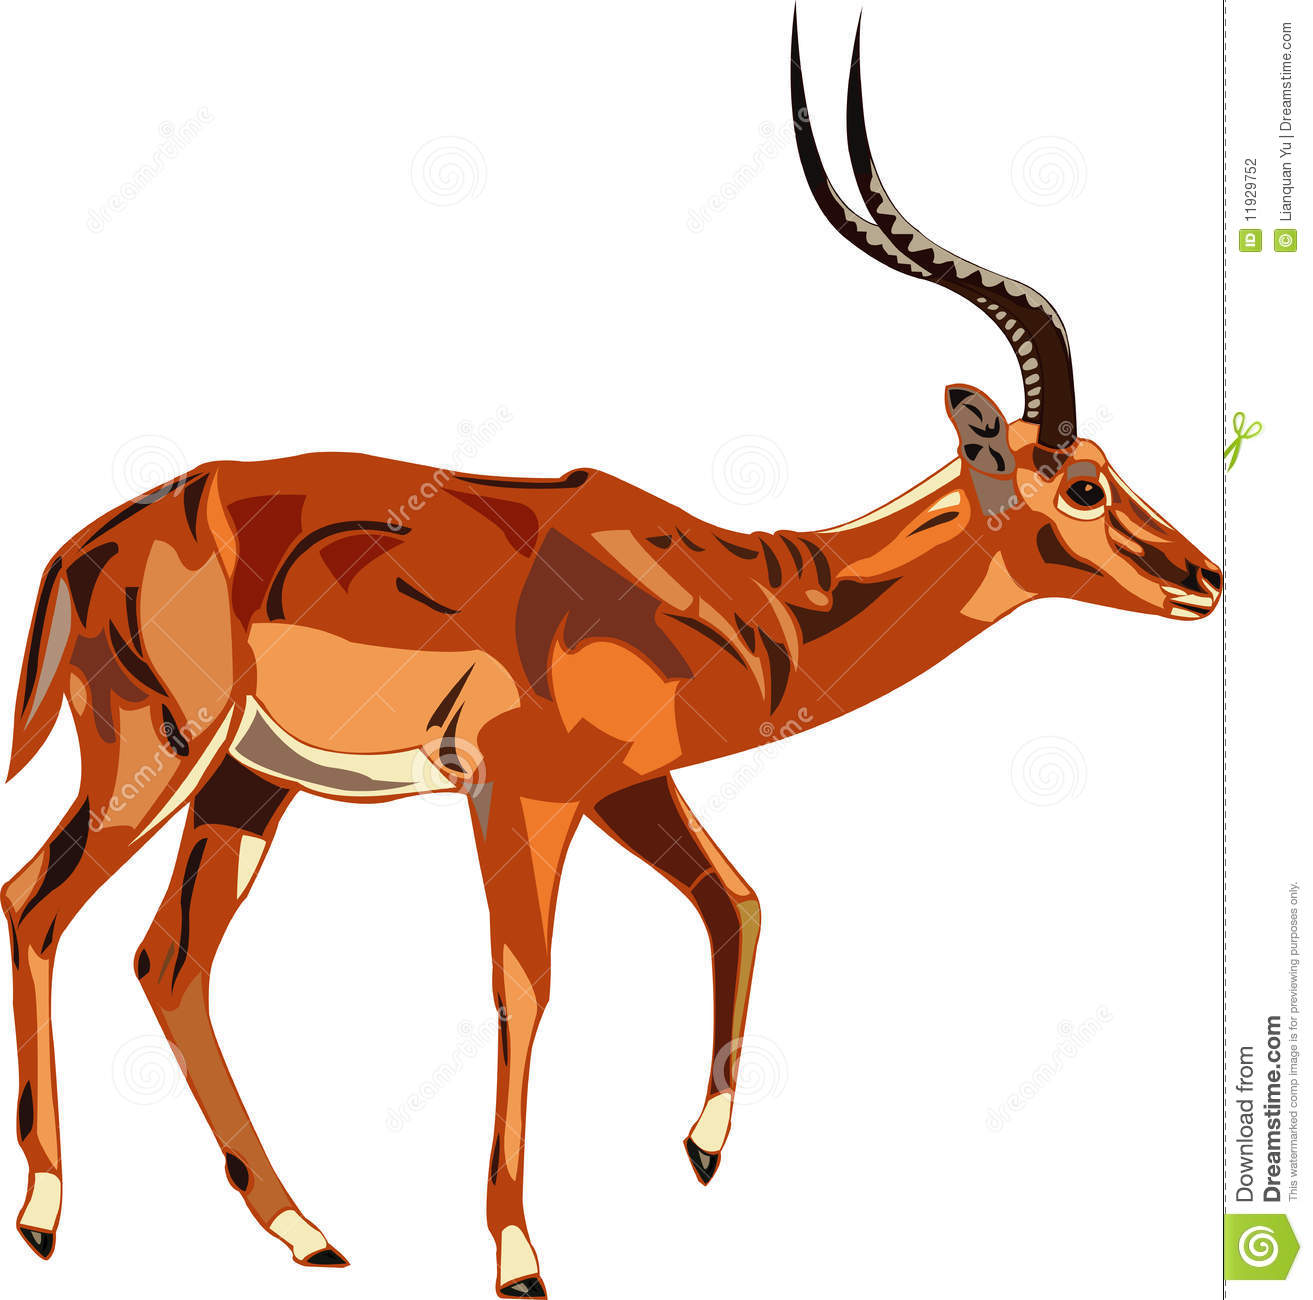 Impala clipart Clipart Free Antelope Images 20clipart